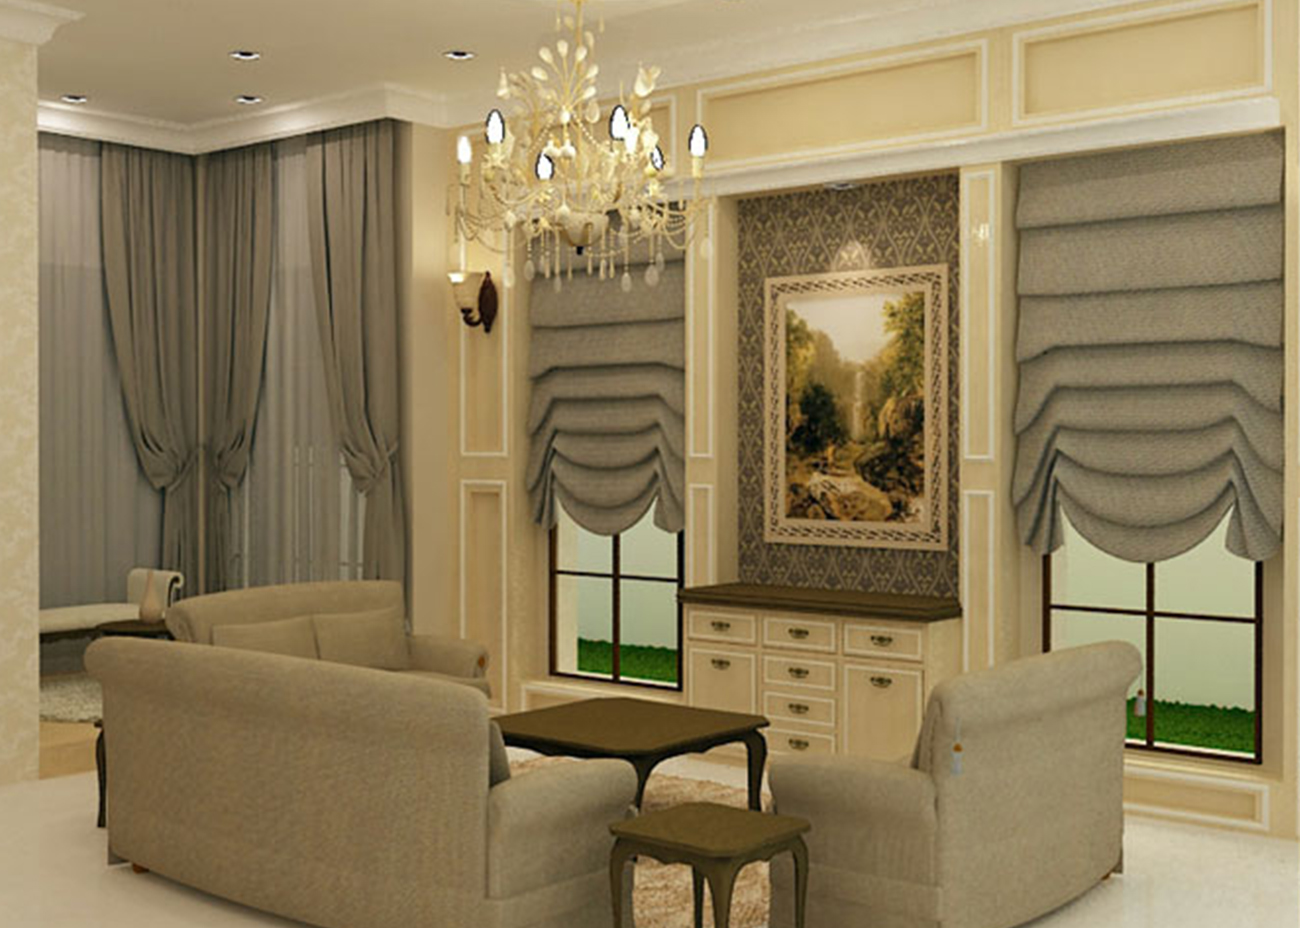 Residential Projects in year 2012 Bayan Mutiara